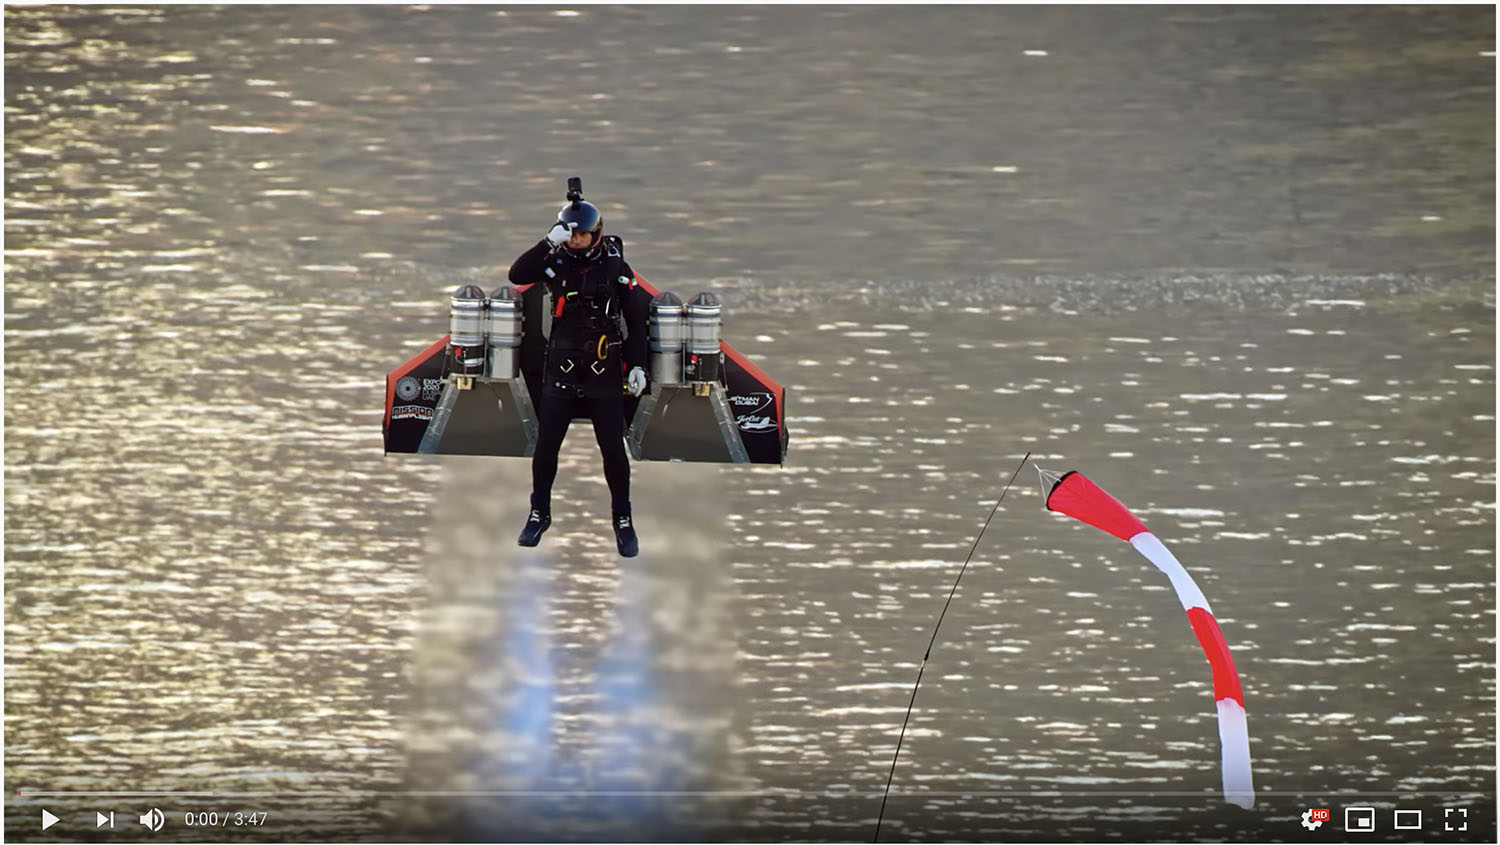 Jet-Powered Human, Ground Launched And Landed! You Will Not Believe What You're Seeing